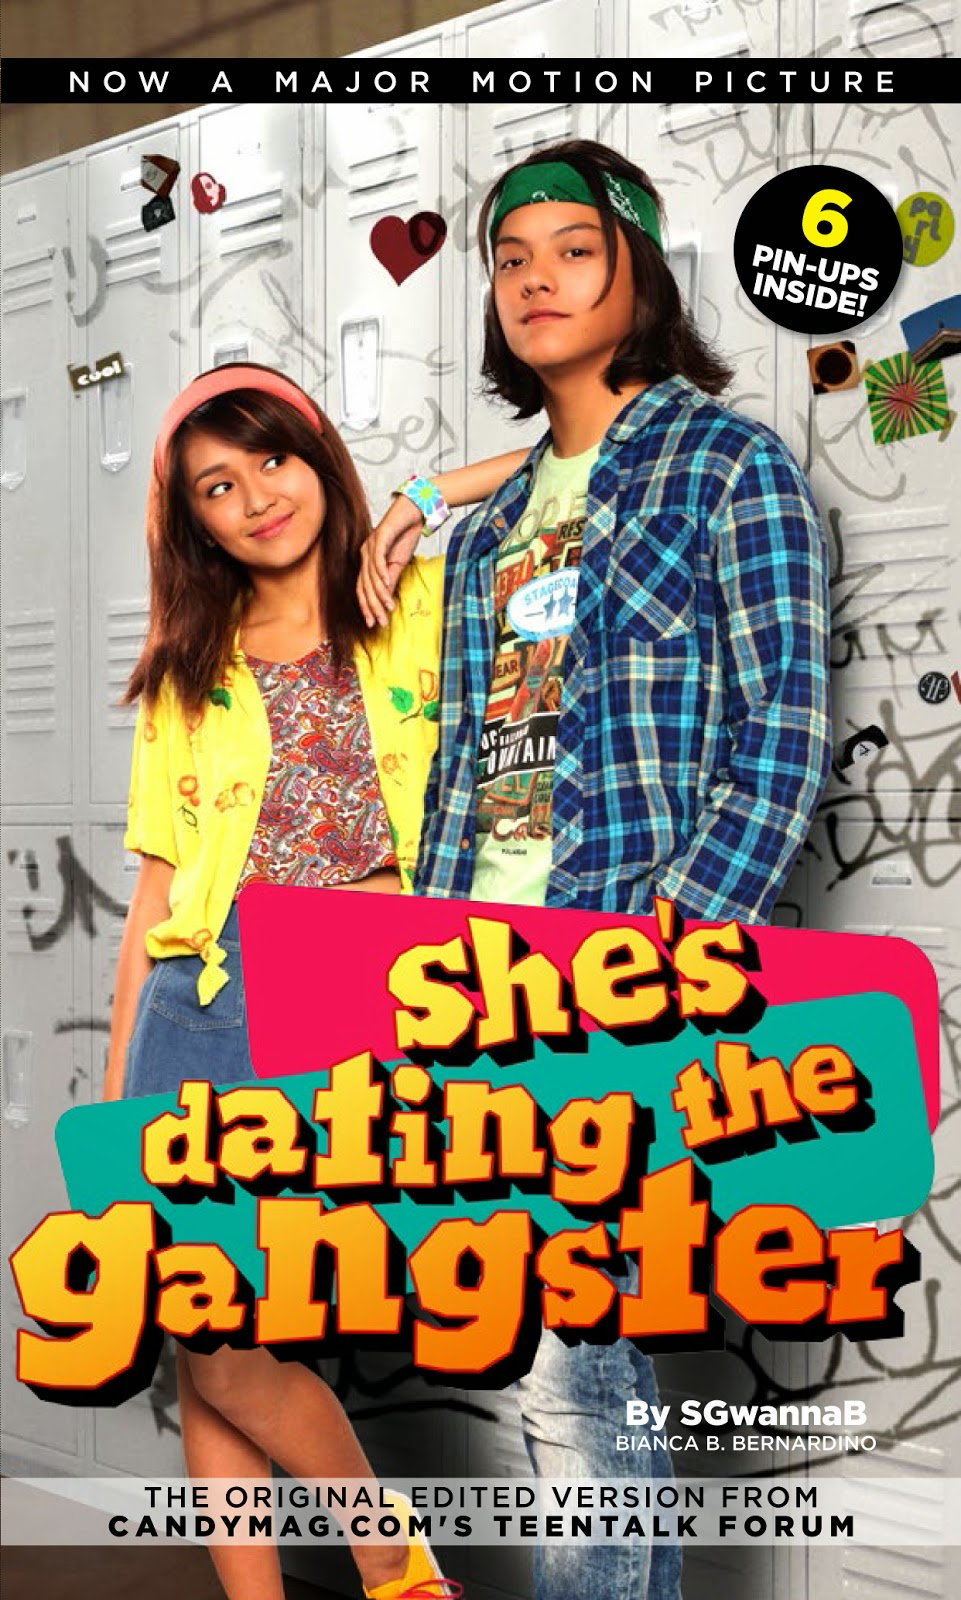 shes dating the gangster movie summary tagalog She s dating the gangster summary tagalog project she carbon dating flaws youtube s dating the gangster is not a great movie but it does.